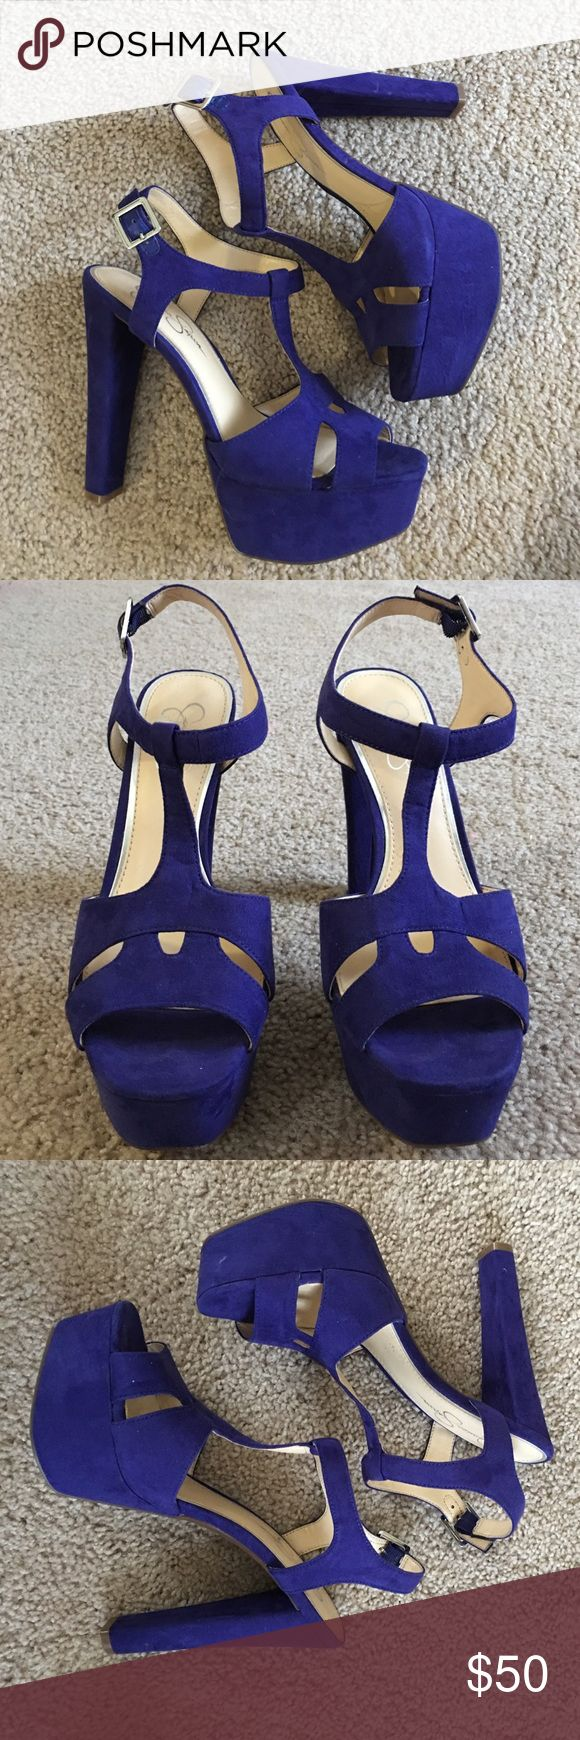 7.5 Jessica Simpson Royal Blue Suede Platform Heel Super cute ritual blue platform heels! This season, Worn once and they are just too impractical for me. No scuffs on the shoe and the soles are still practically new. See pics. Paid $98 for them, fit a 7.5. I love Jessica Simpson Heels bc they have a wider toe box and are relatively comfortable to wear! Jessica Simpson Shoes Platforms